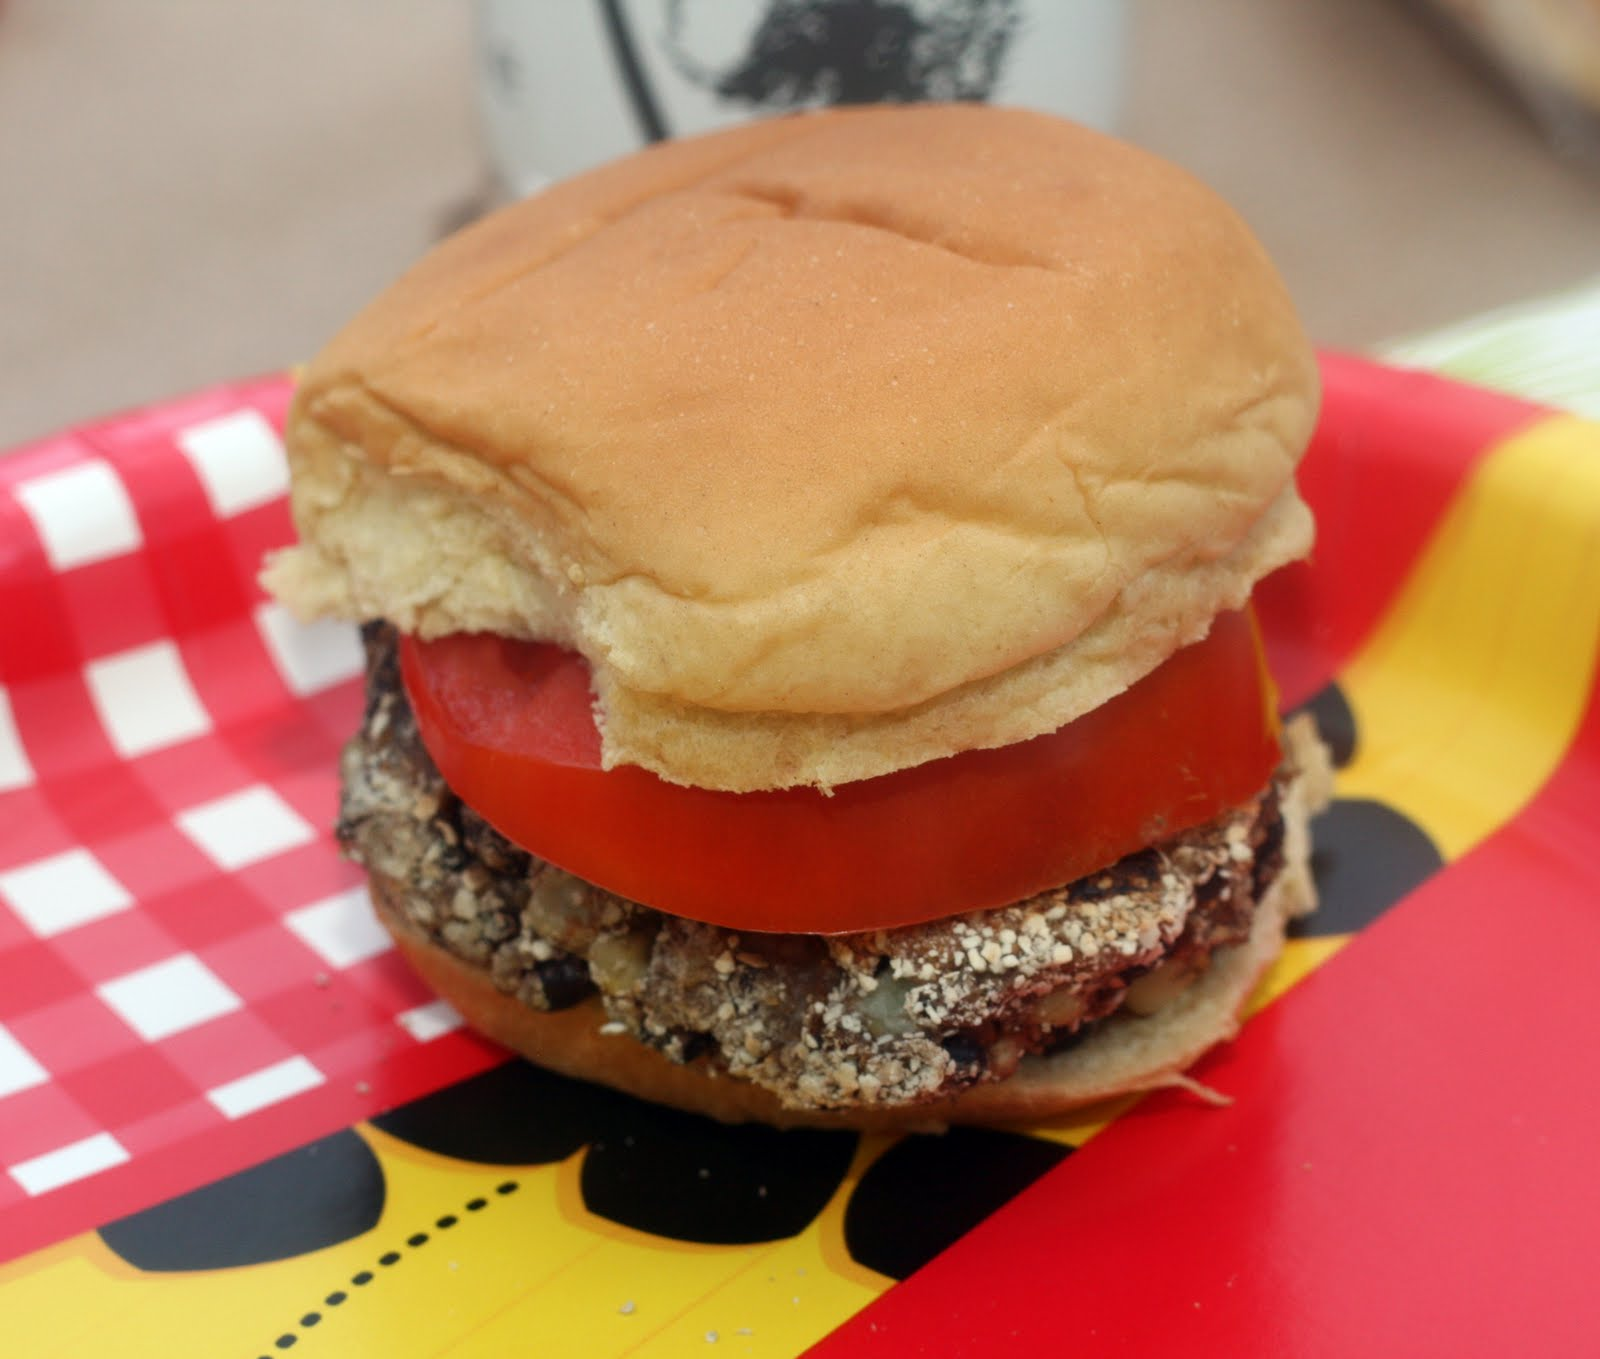 ... Lime // recipes by Rachel Rappaport: Grilled Black Bean & Corn Burgers